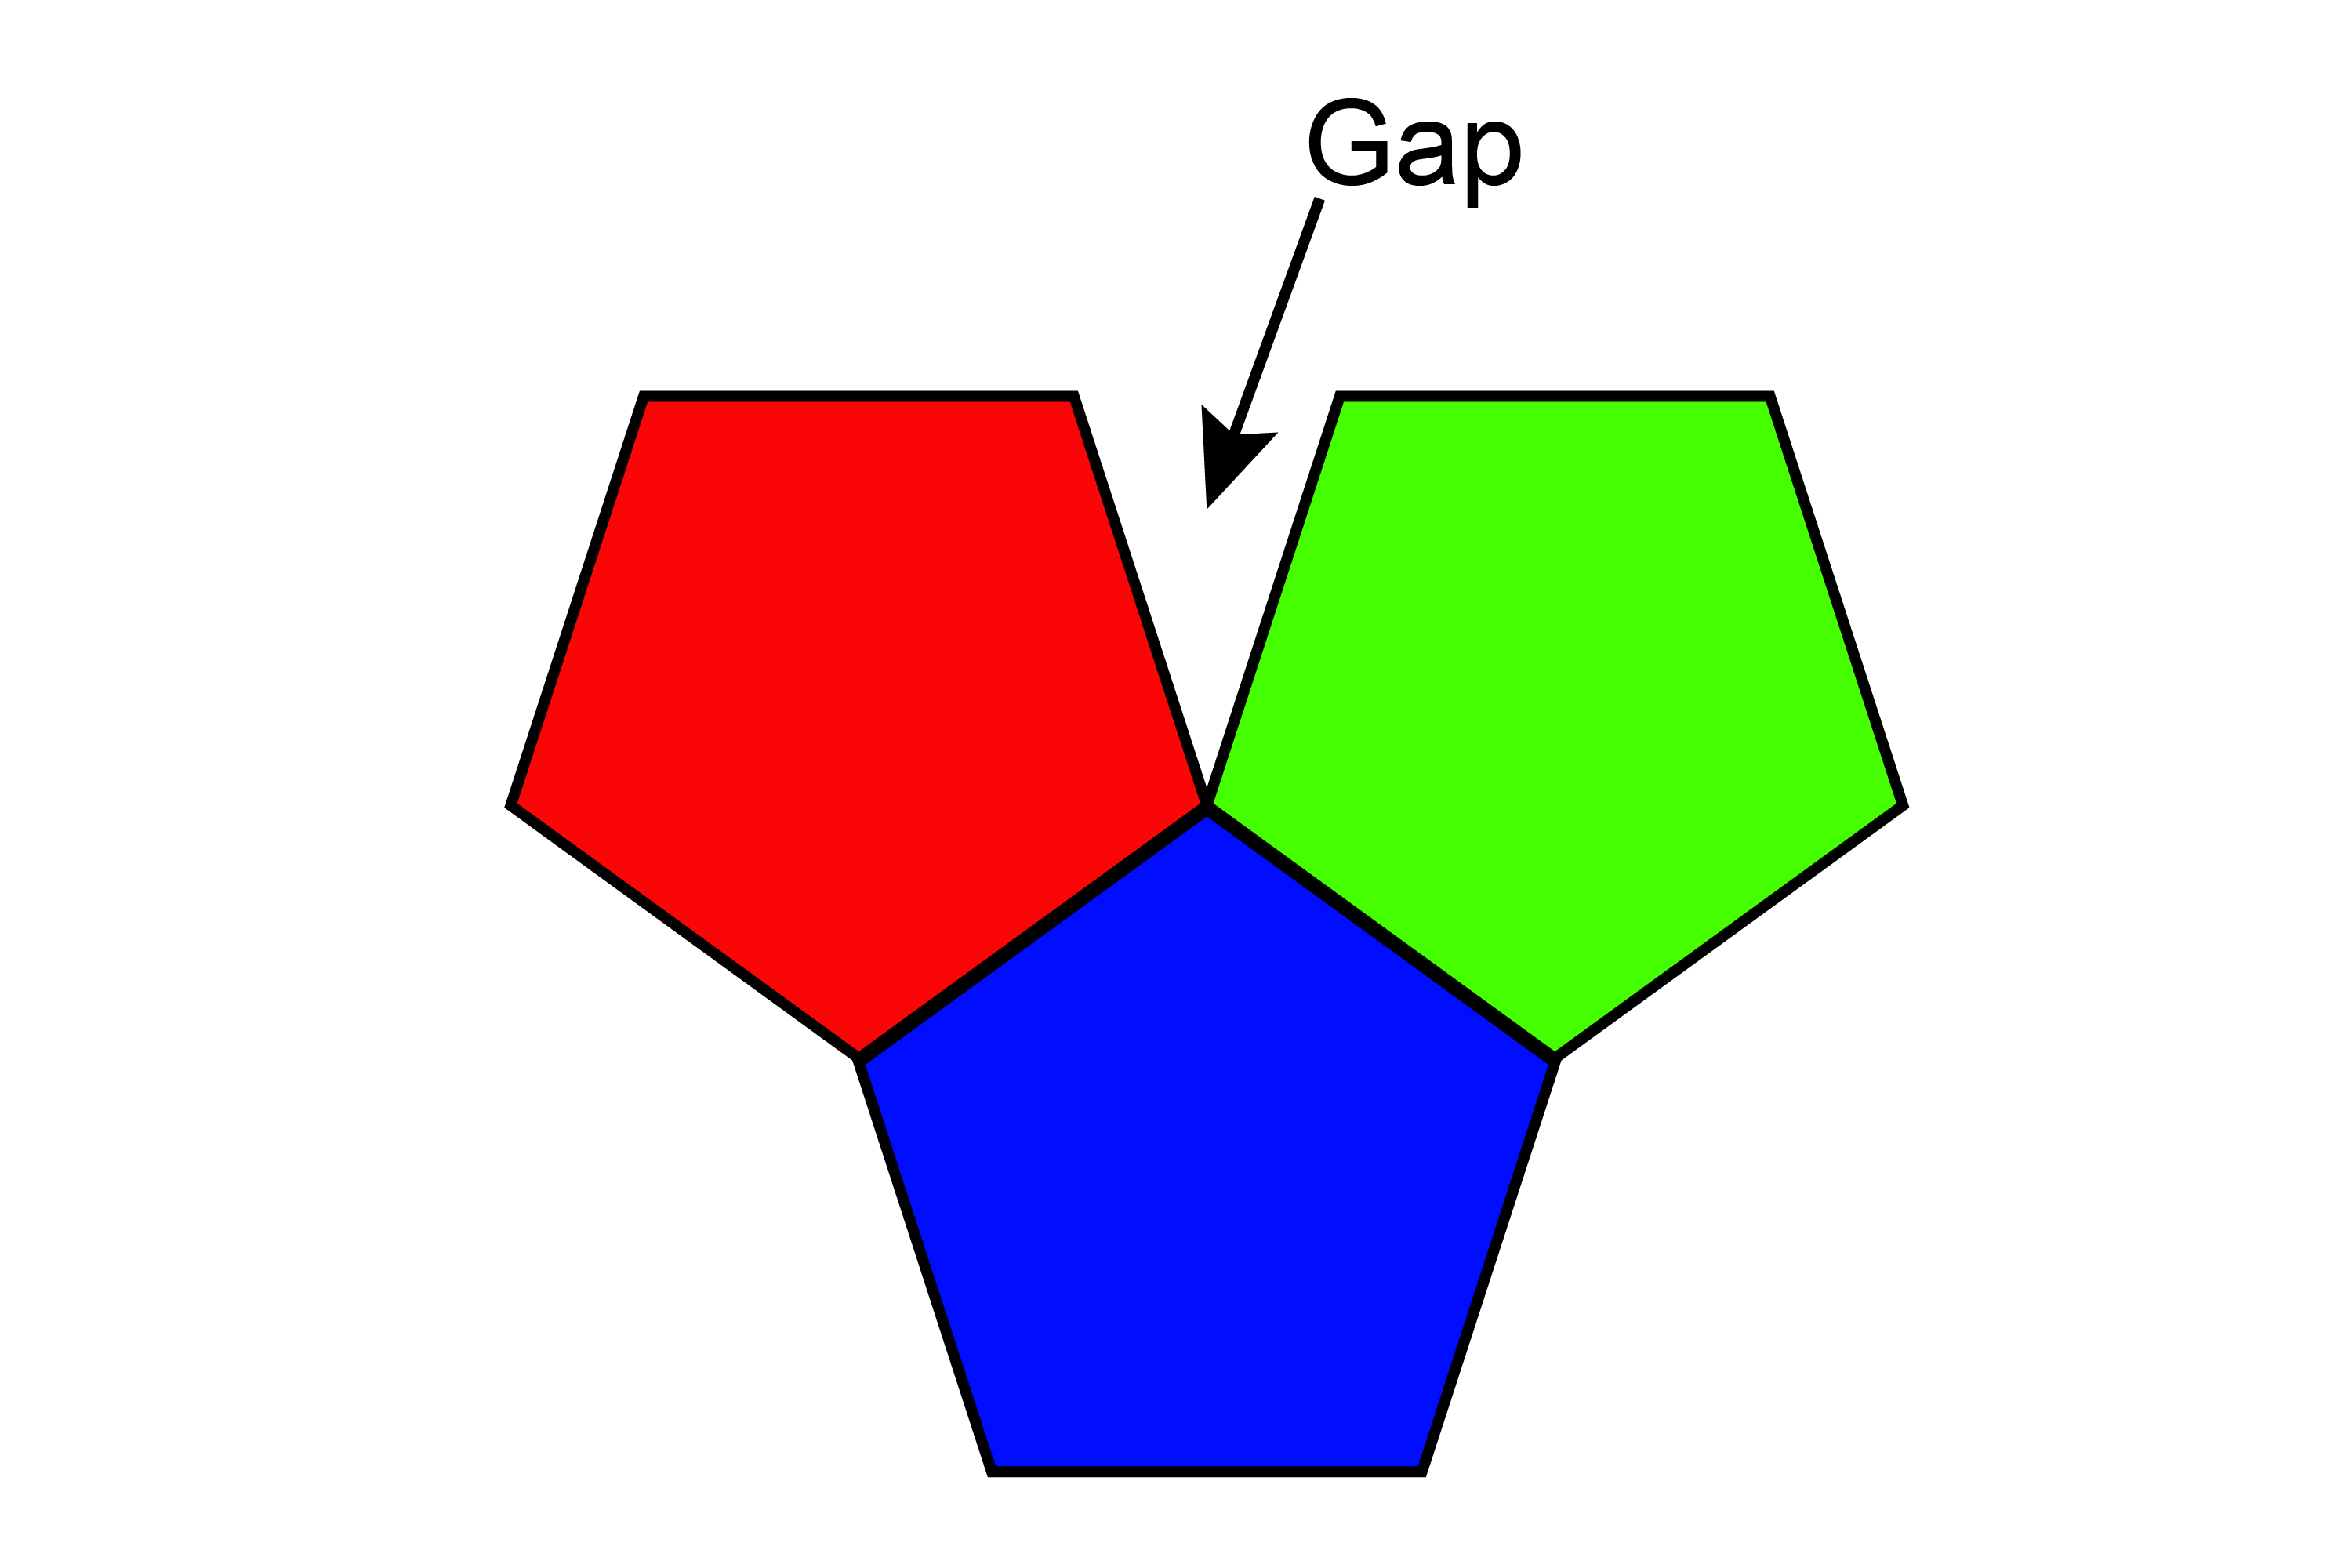 Pentagons don't tessellate meaning the gap made another pentagon wont fit